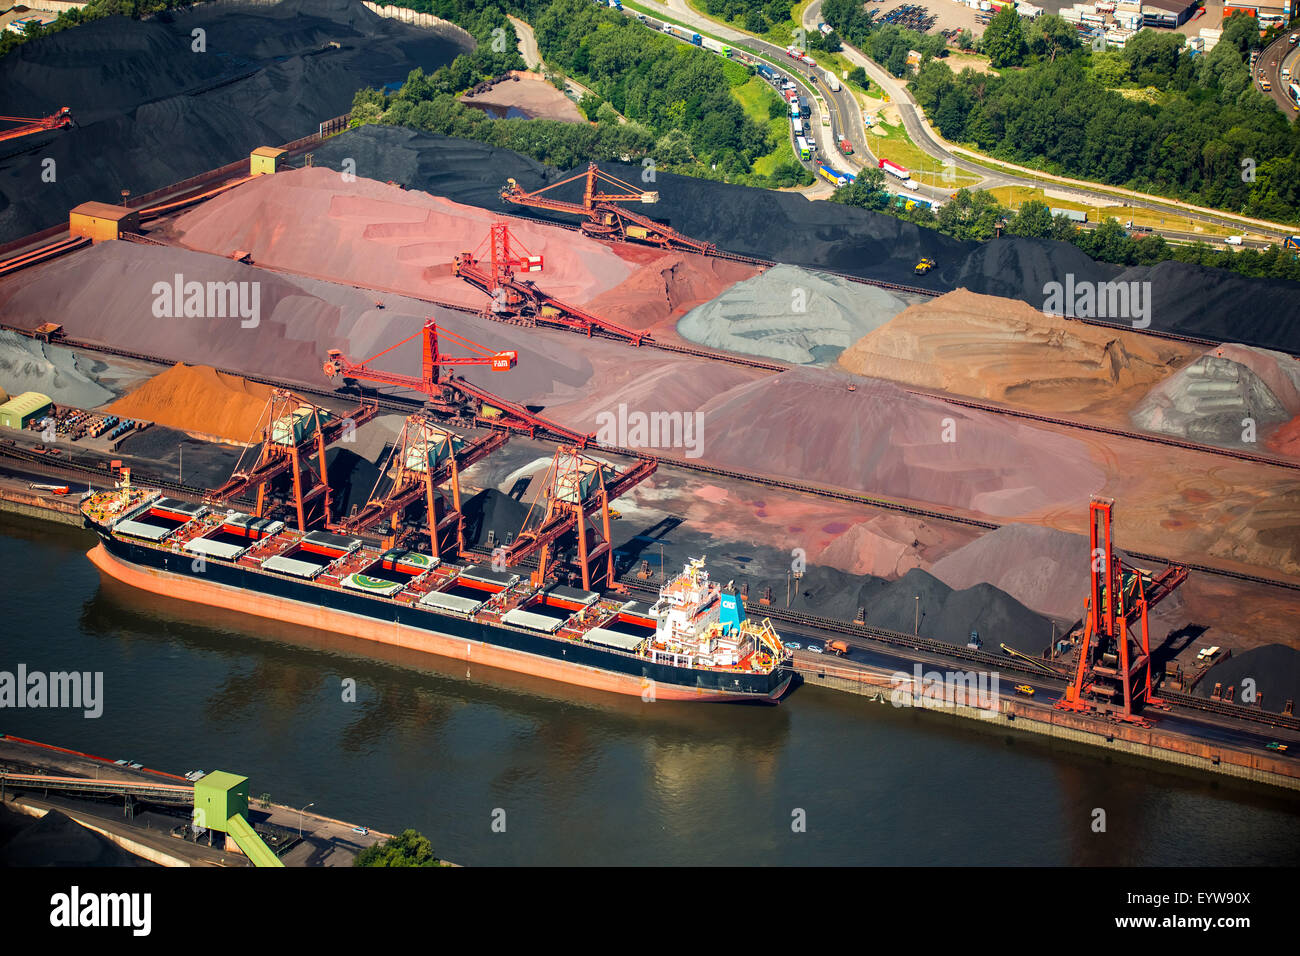 Bulk, Sandauhafen, Hansa Port, Port of Hamburg, Elbe, Hamburg, Germany - Stock Image